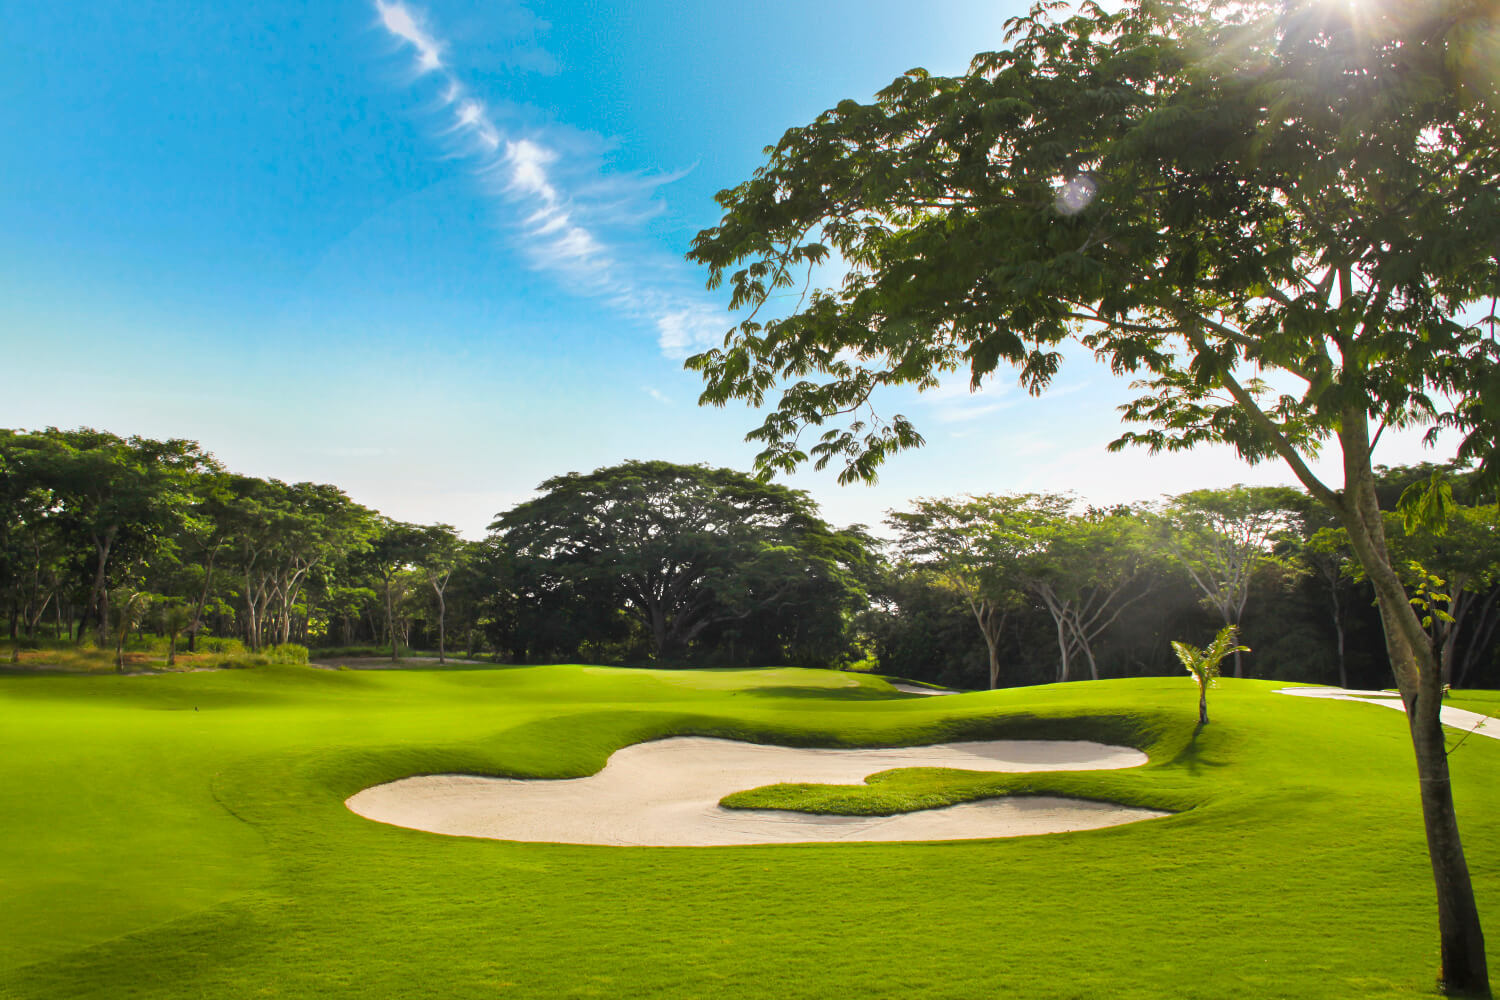 BUENAVENTURA GOLF CLUB AND ABU DHABI GOLF CLUB WIN BEST-IN-COUNTRY WORLD GOLF AWARDS